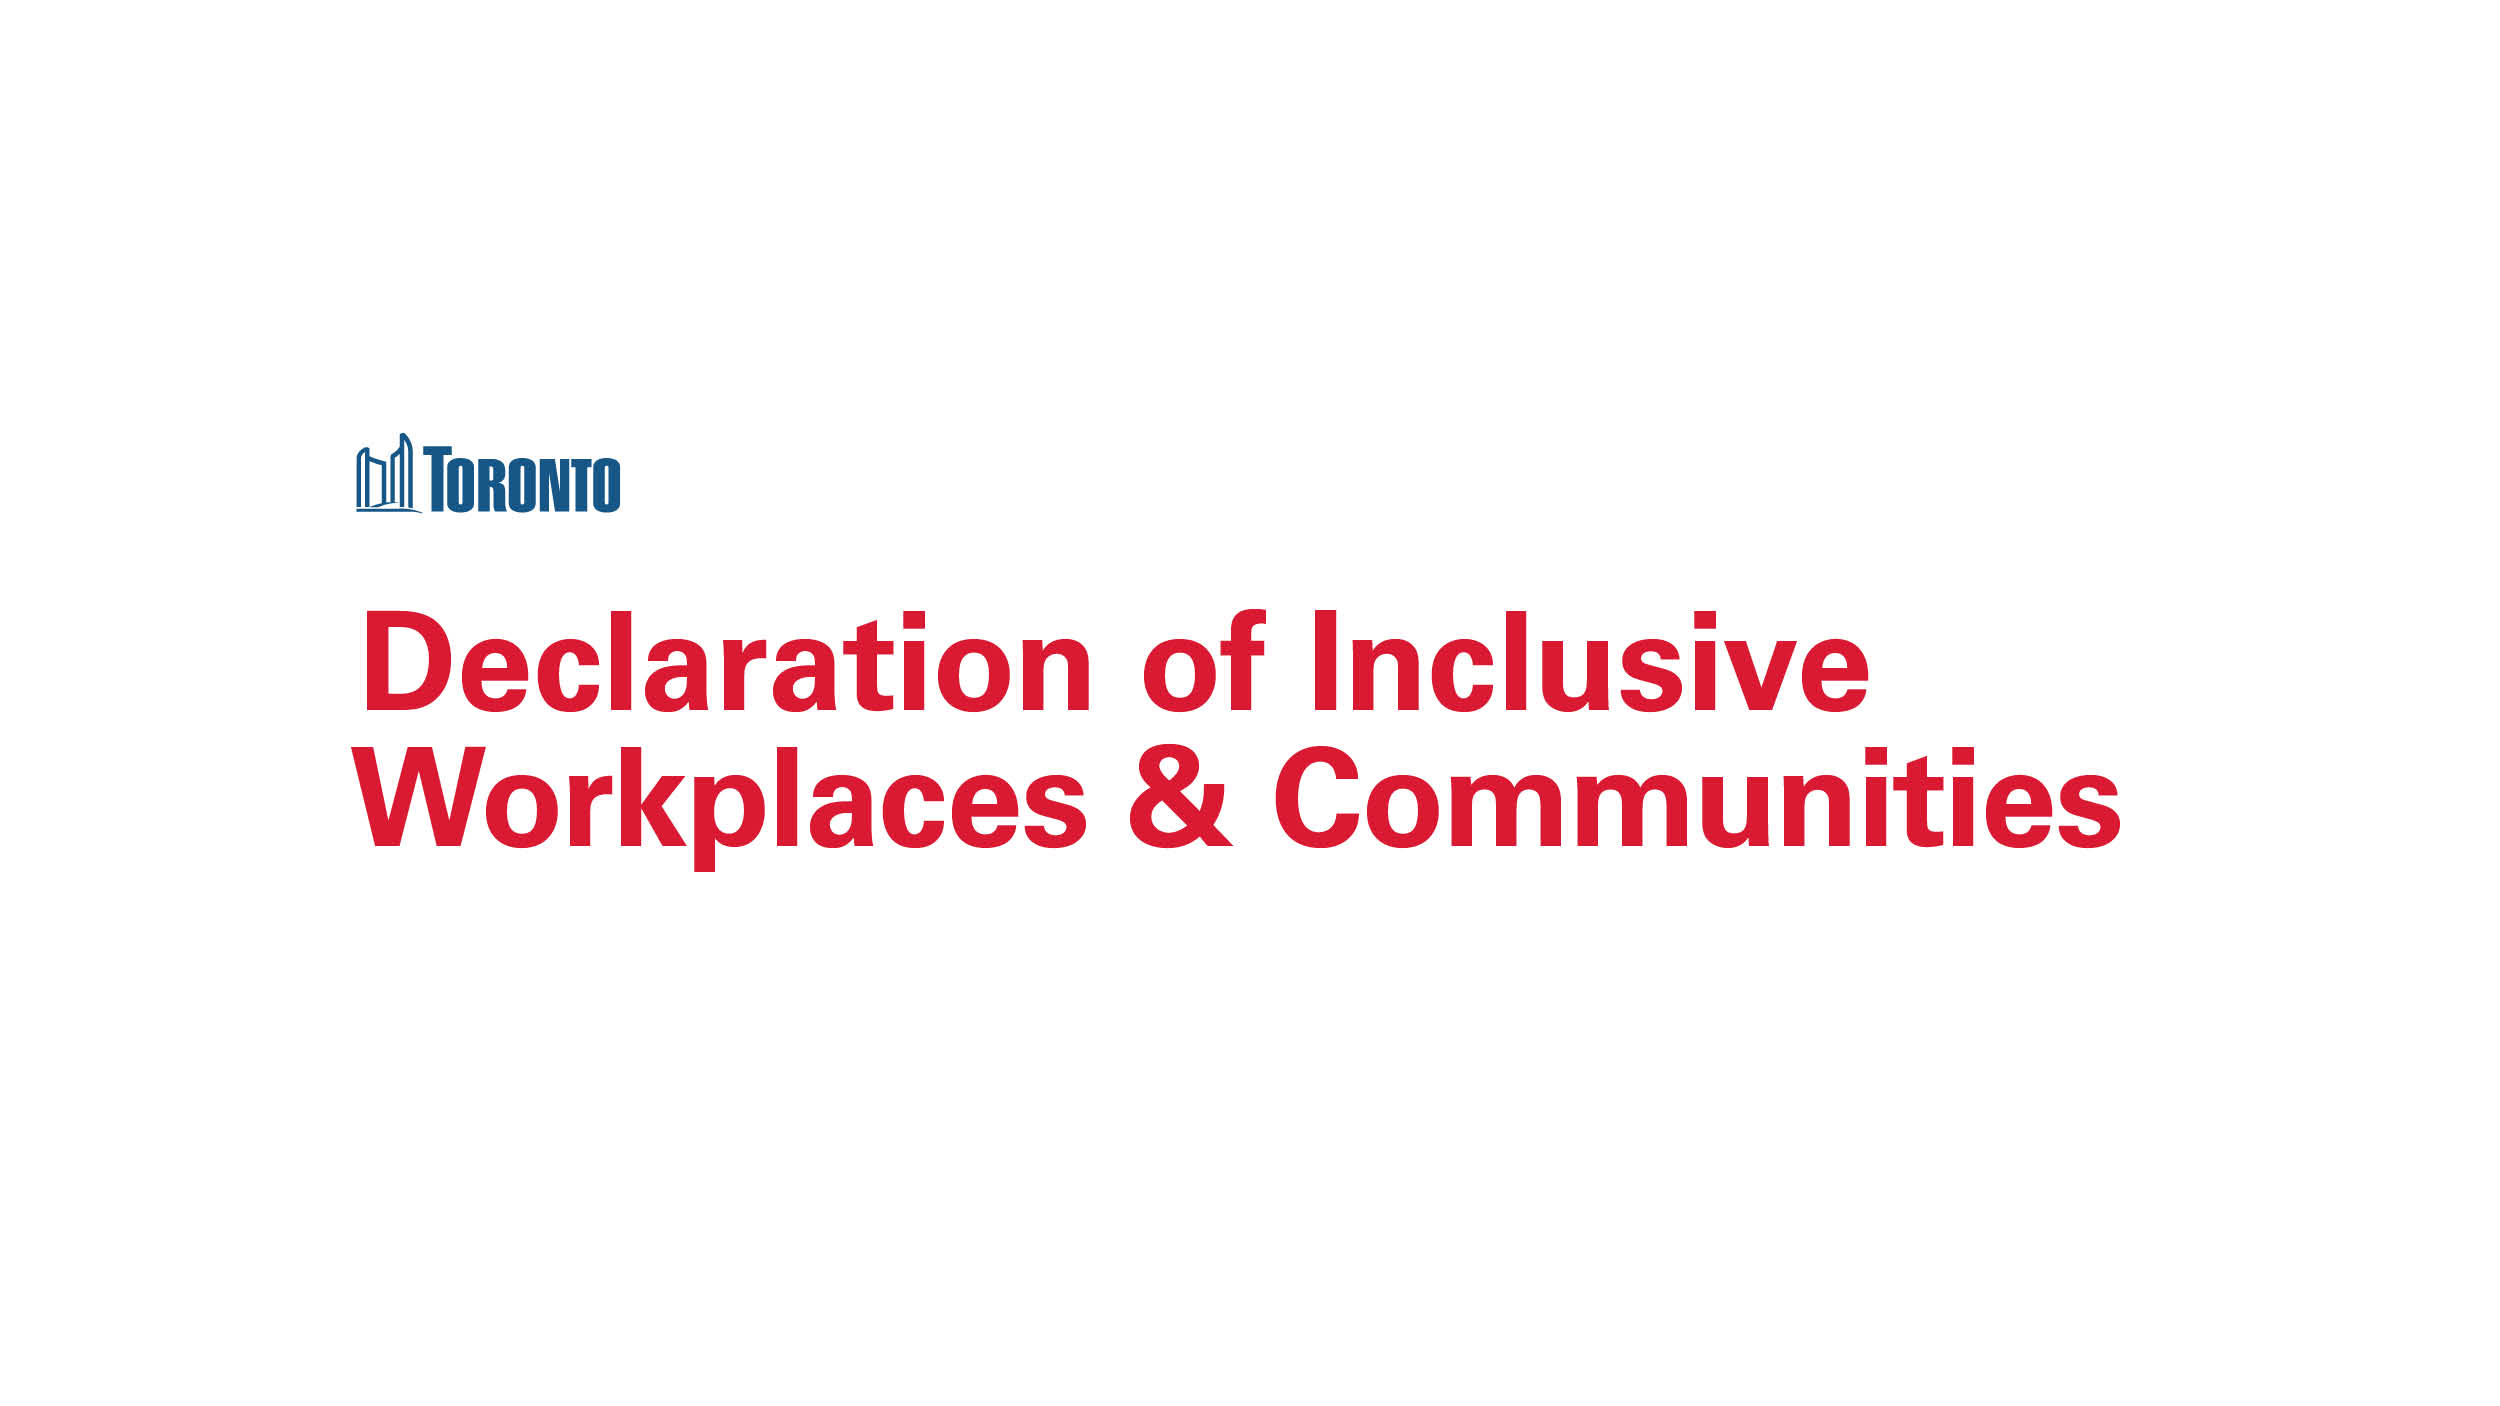 Declaration of Inclusive Workplaces and Communities - City of Toronto